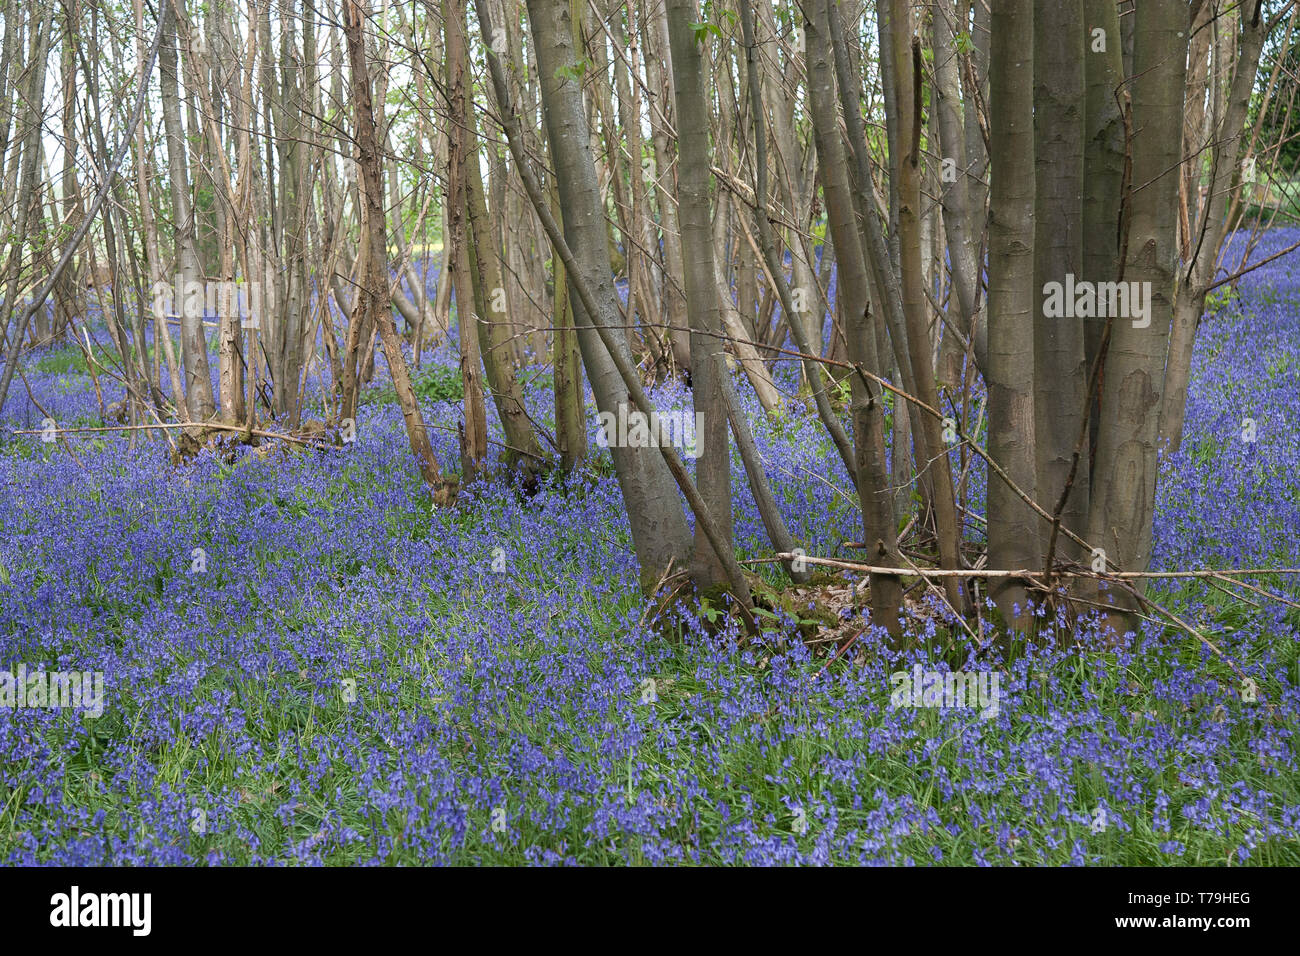 trees Ashdown Forest East Sussex - Stock Image